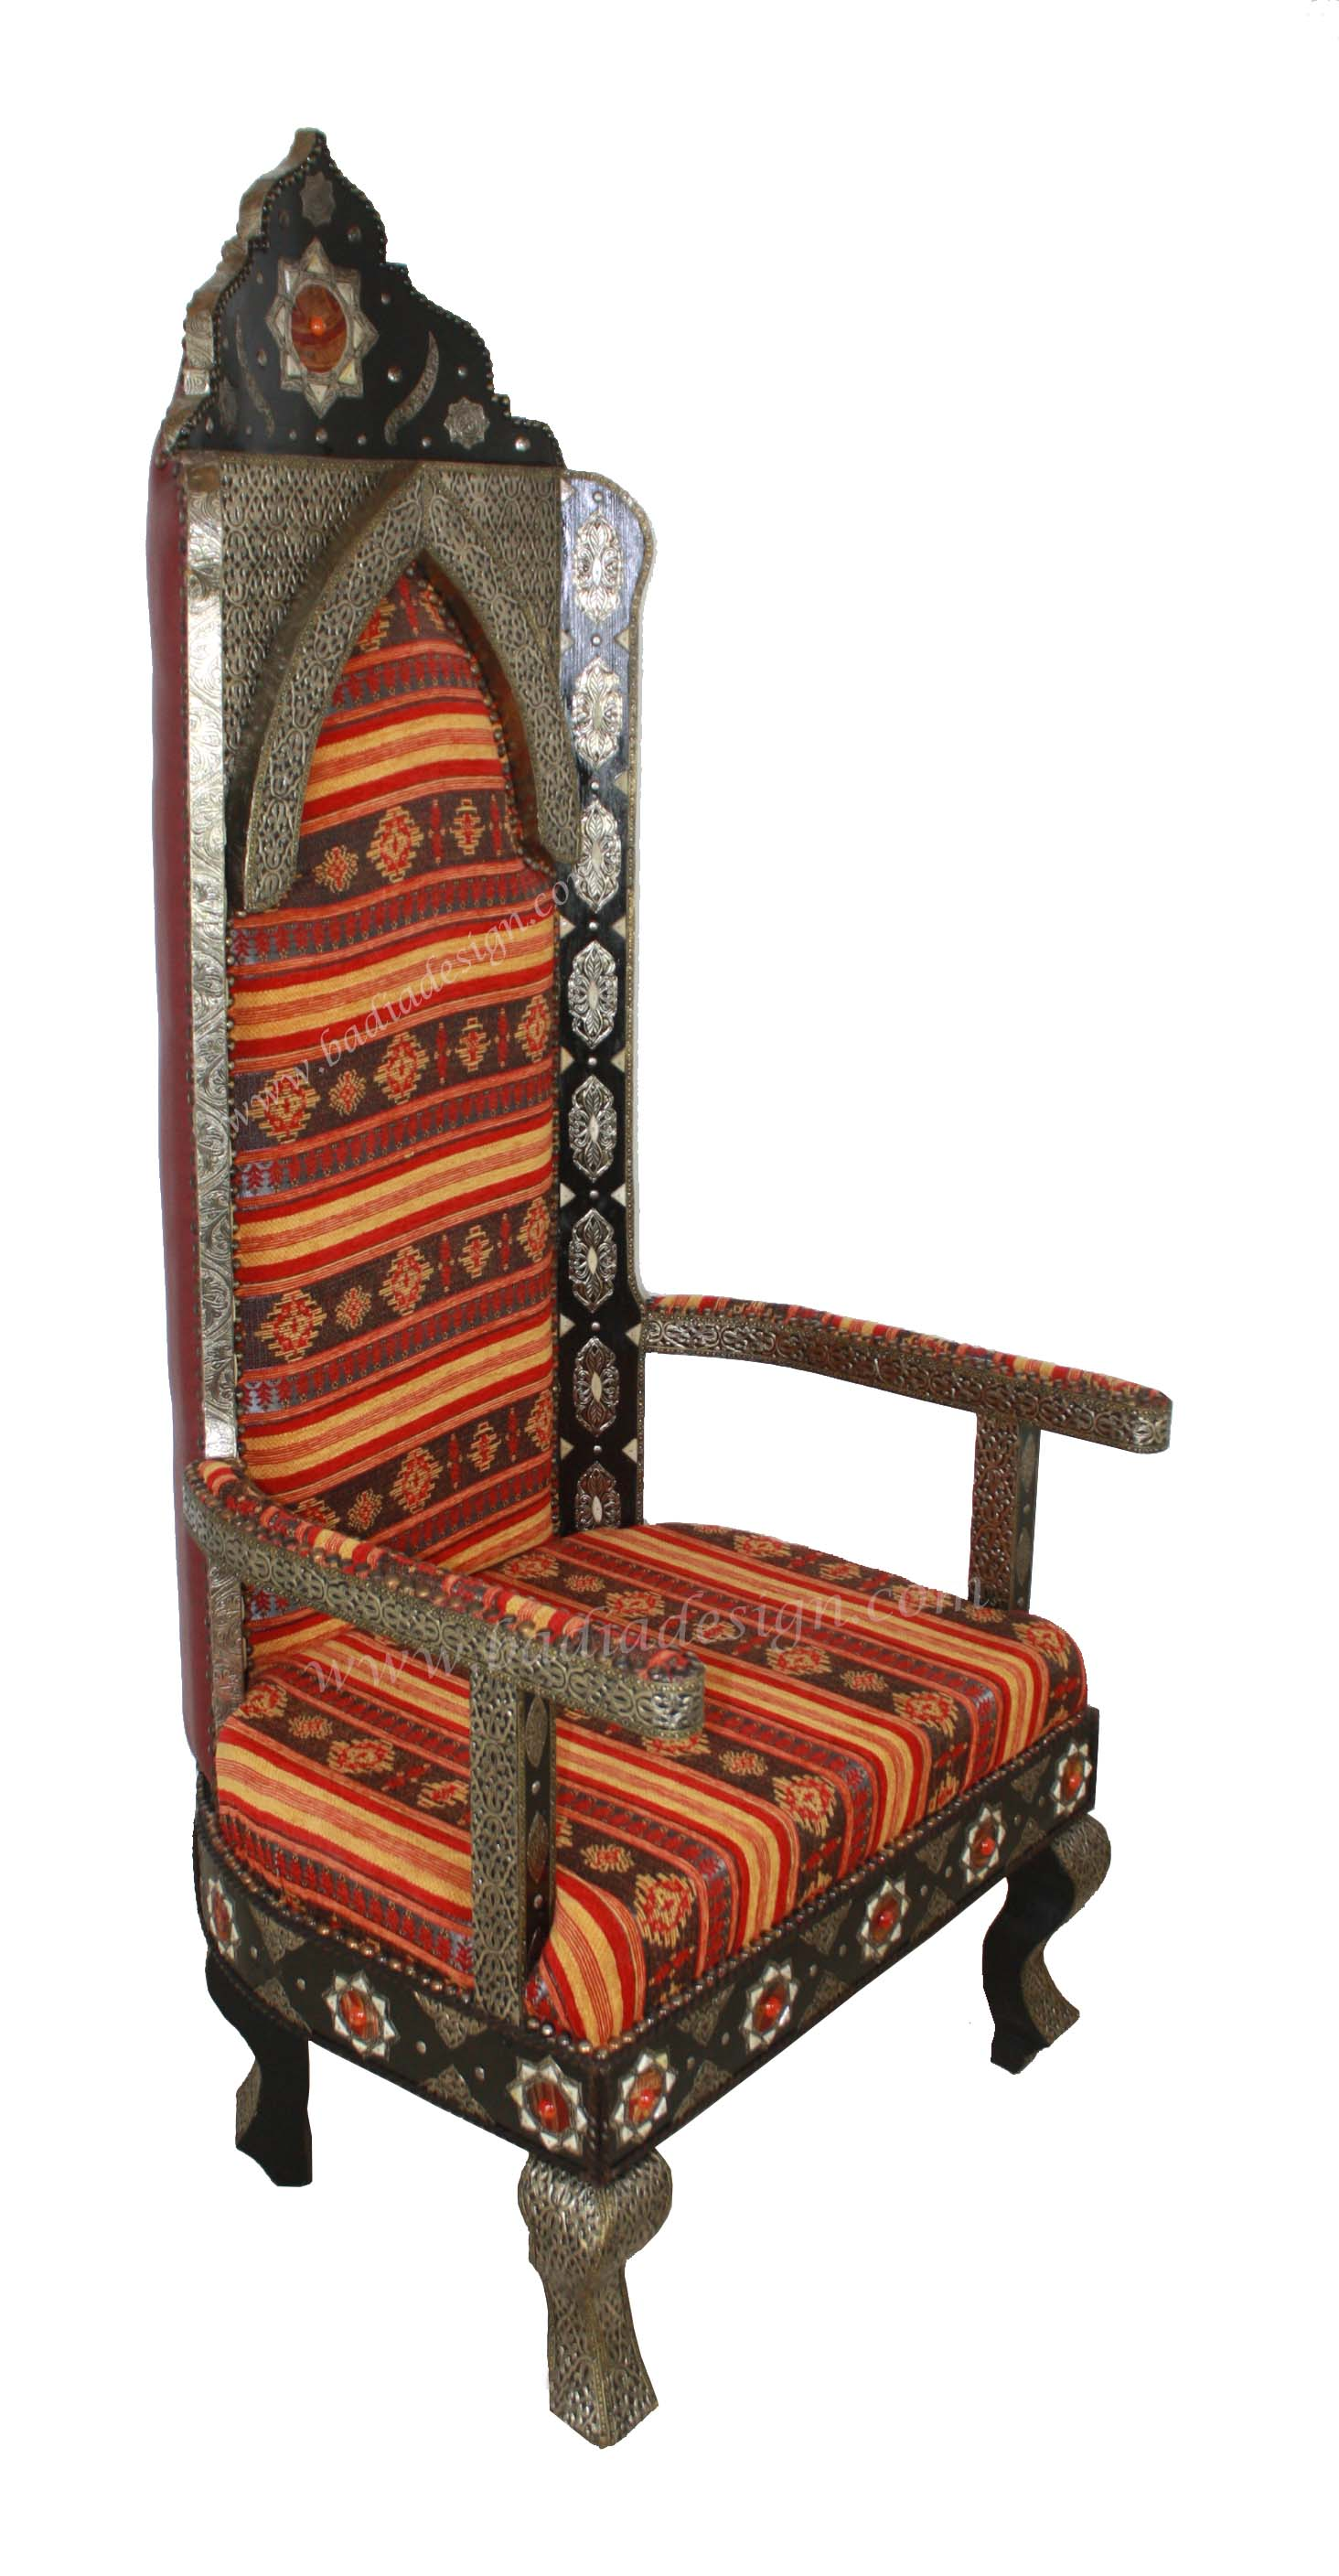 moroccan-large-metal-and-bone-chair-mb-ch029-2.jpg